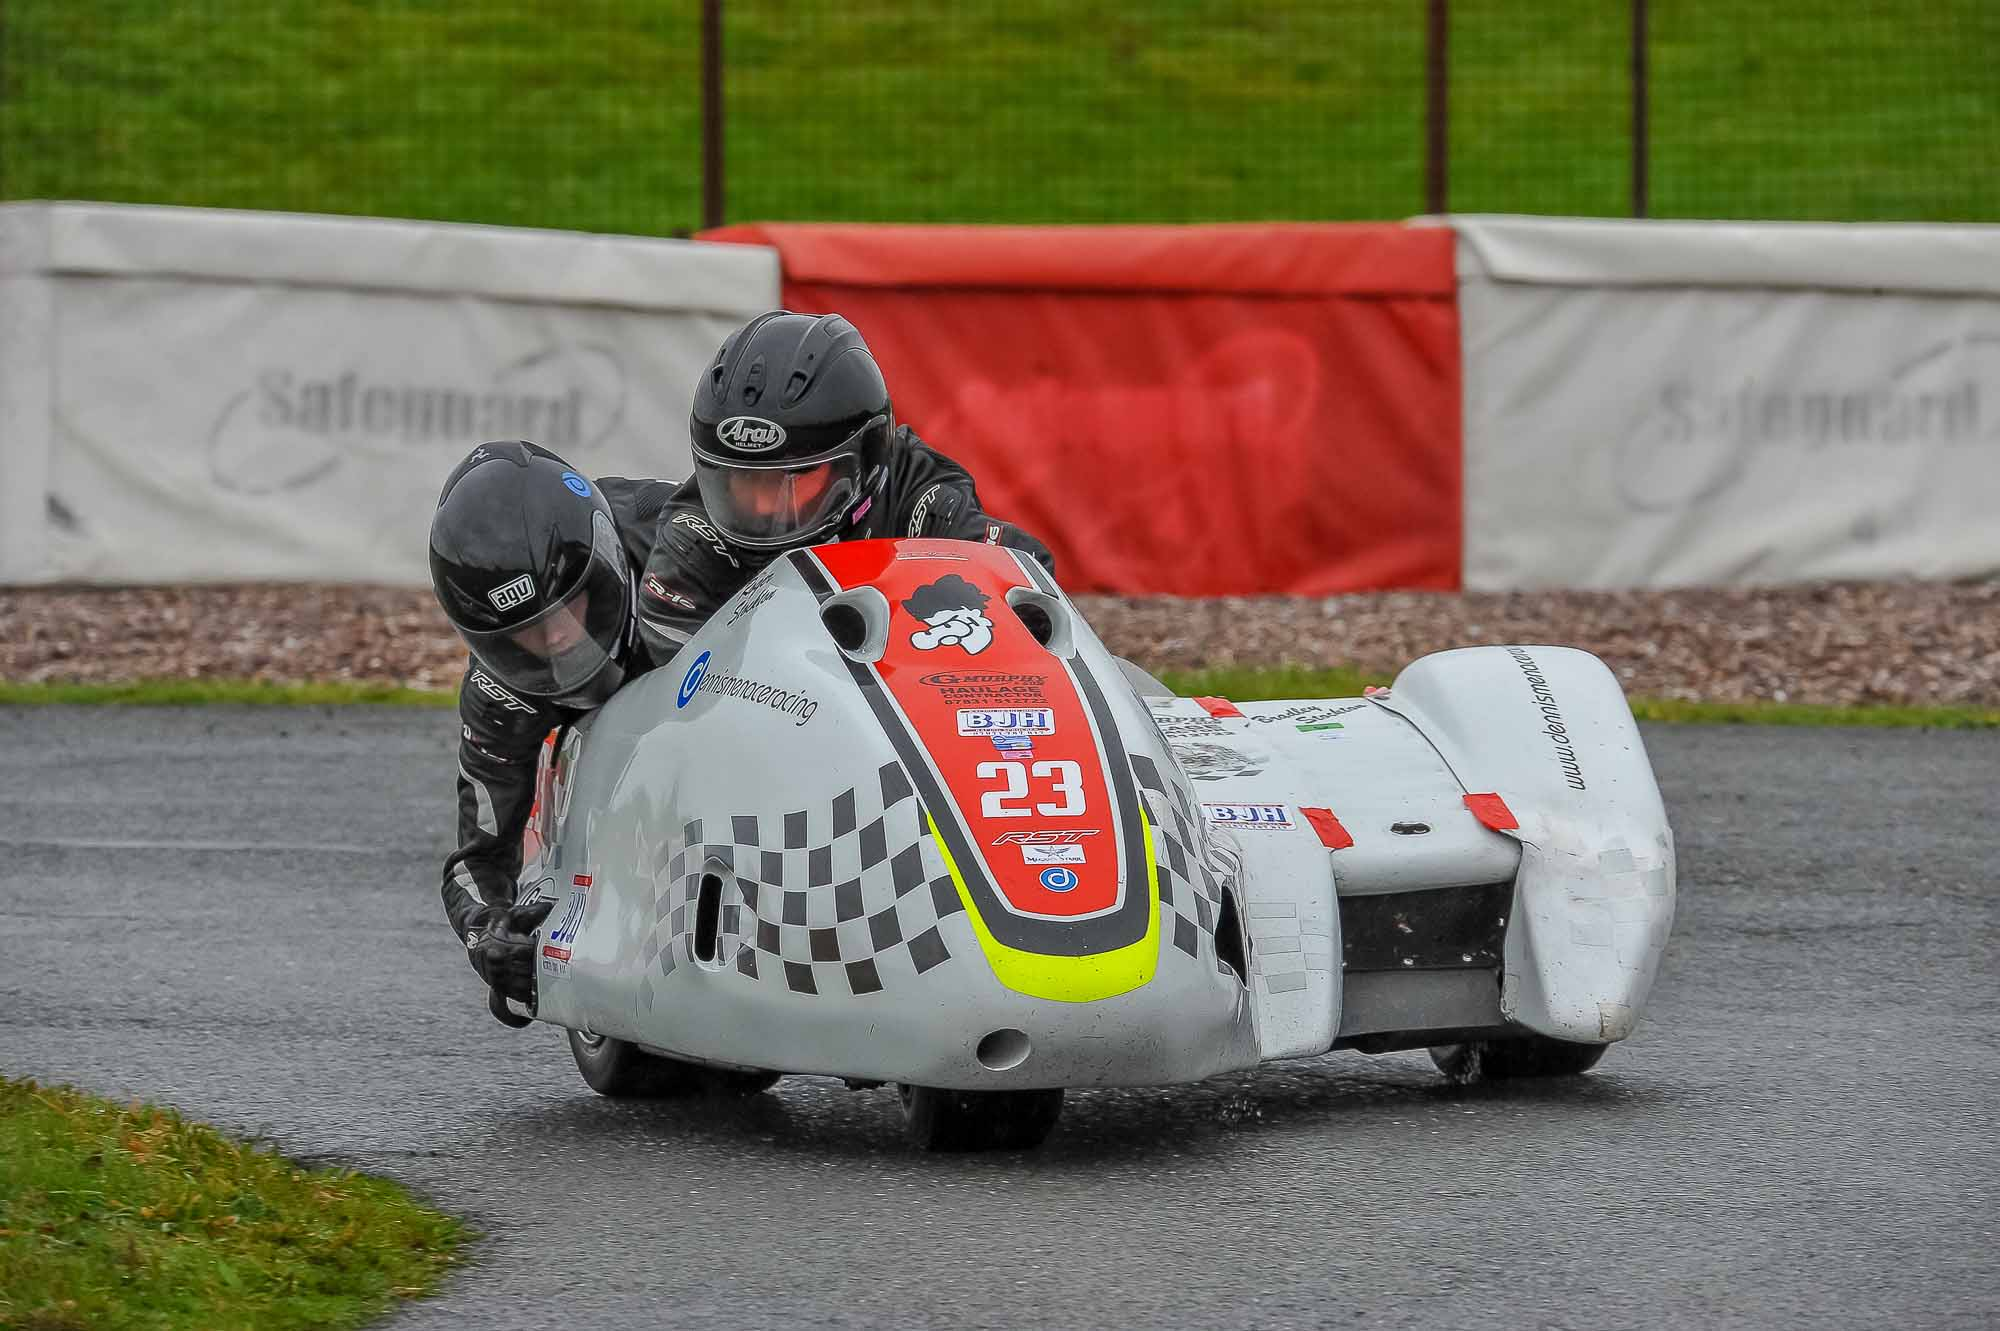 While the Stocktons went winless this weekend, they clinched the F600 sidecar crown...